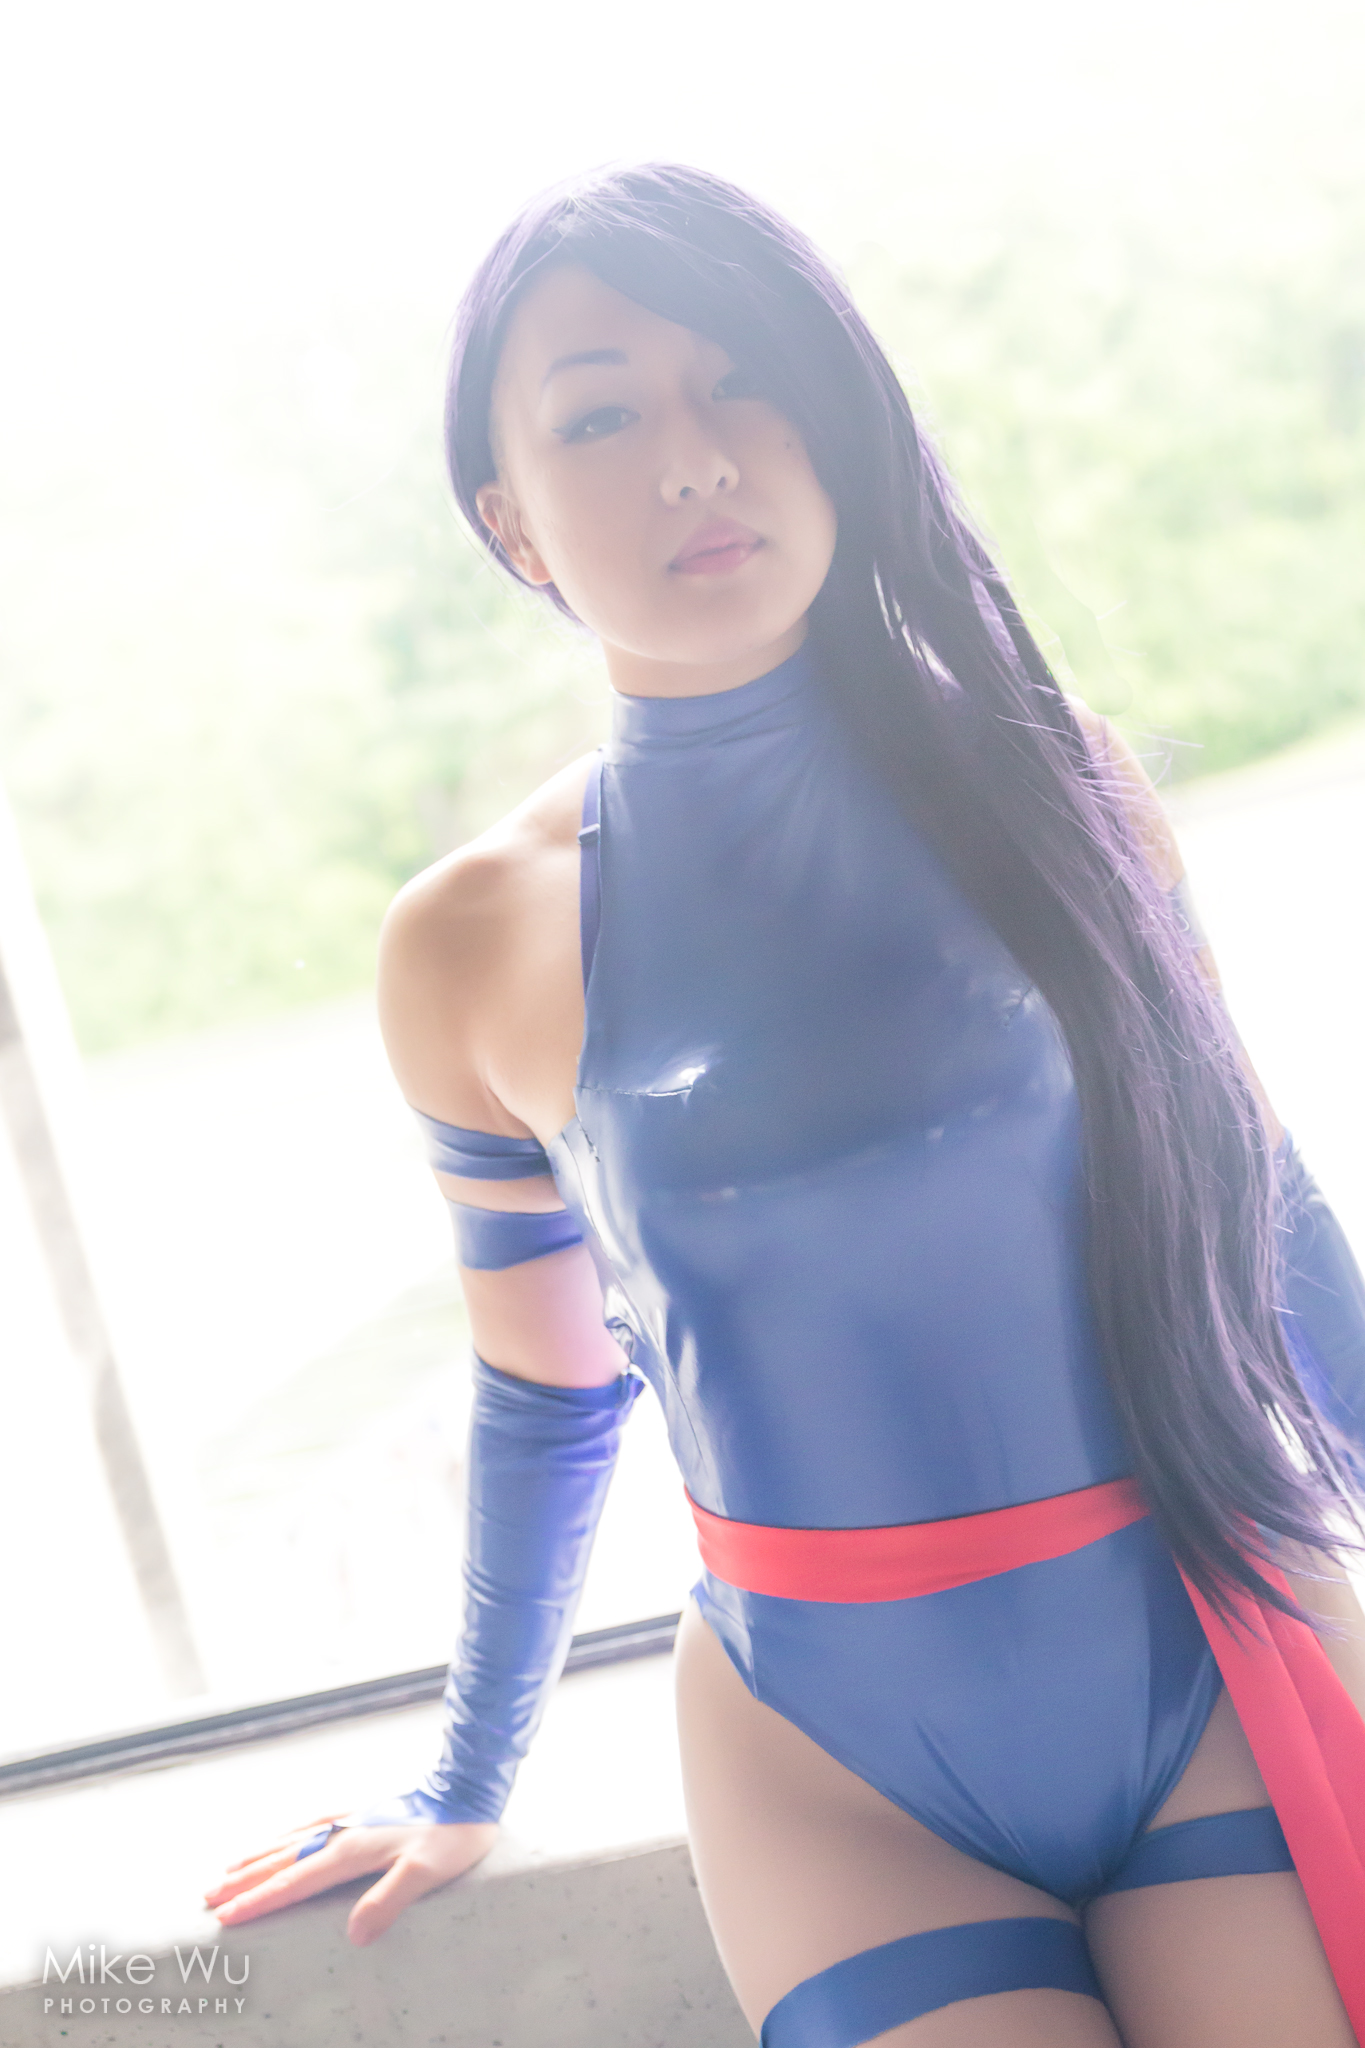 cosplay, x-men, pyslocke, power, mutant, energy, movie